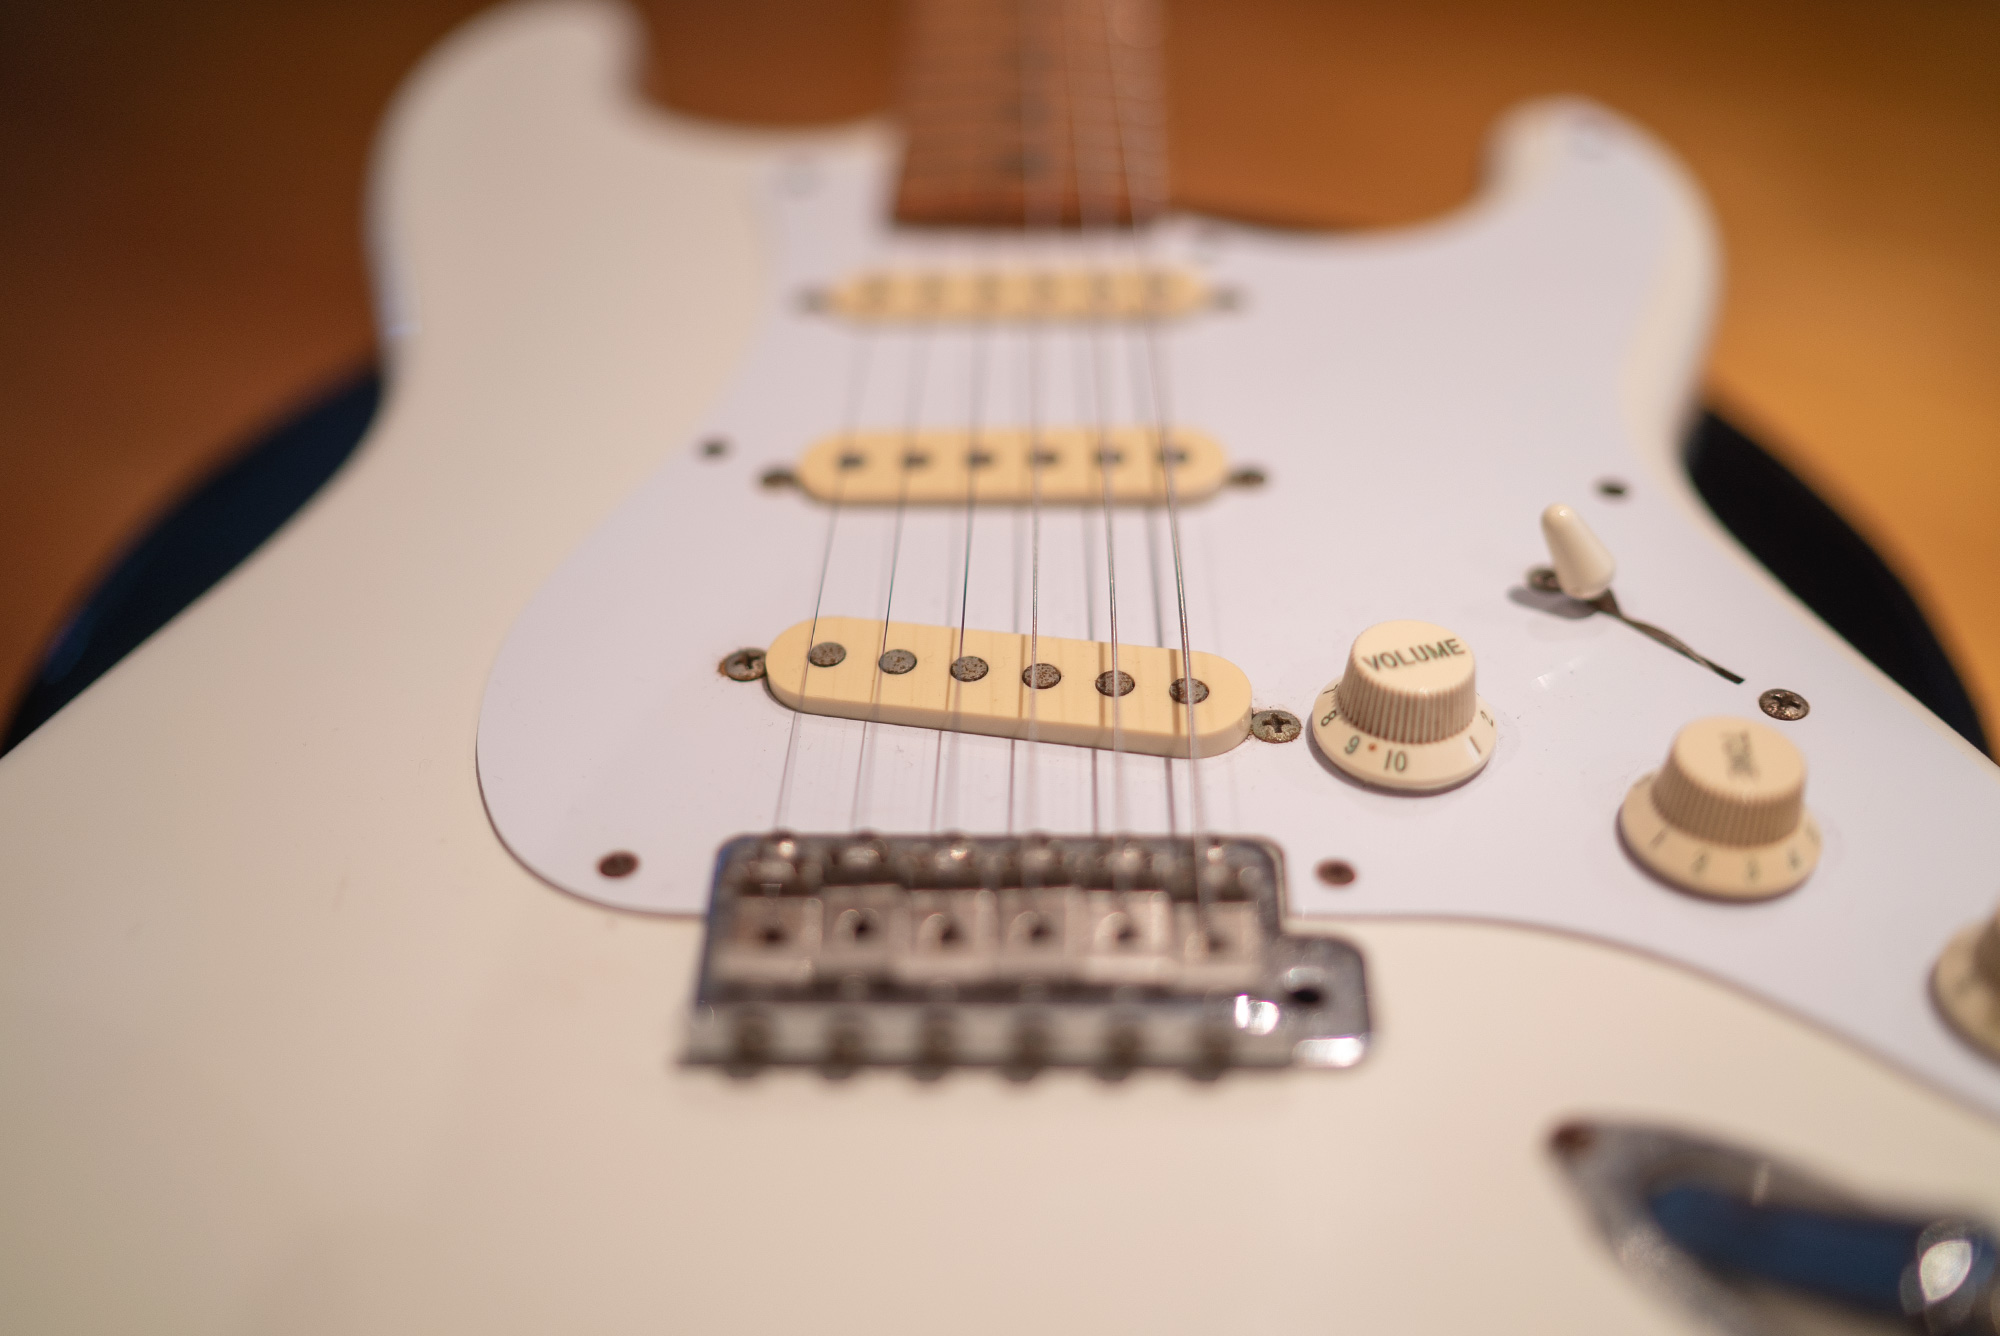 stratocaster_pickup_height